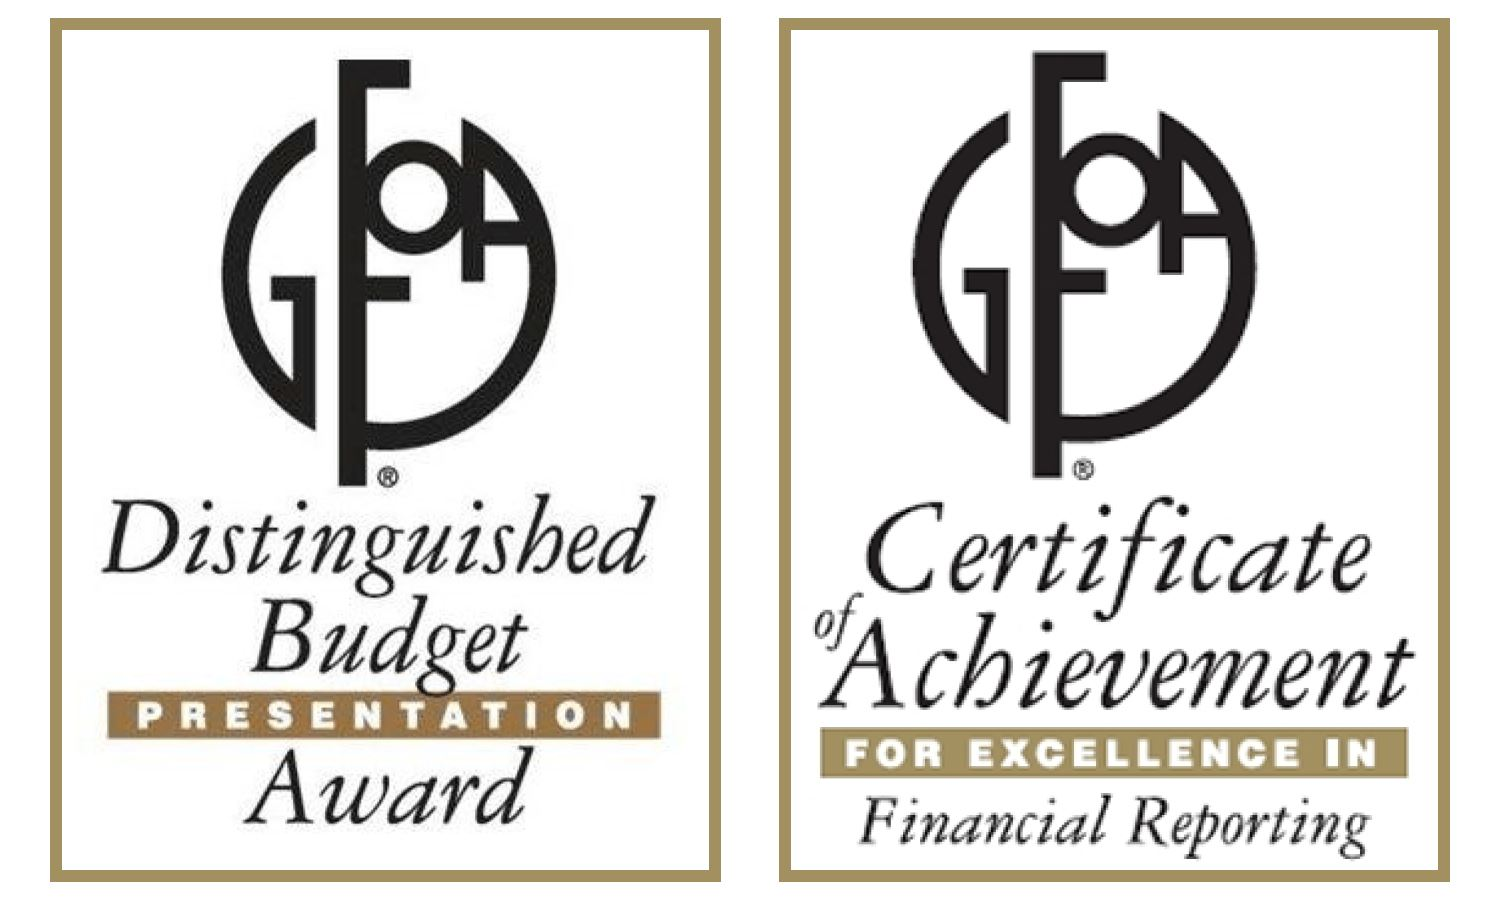 Distinguished Budget and Excellence in Financial Reporting Awards